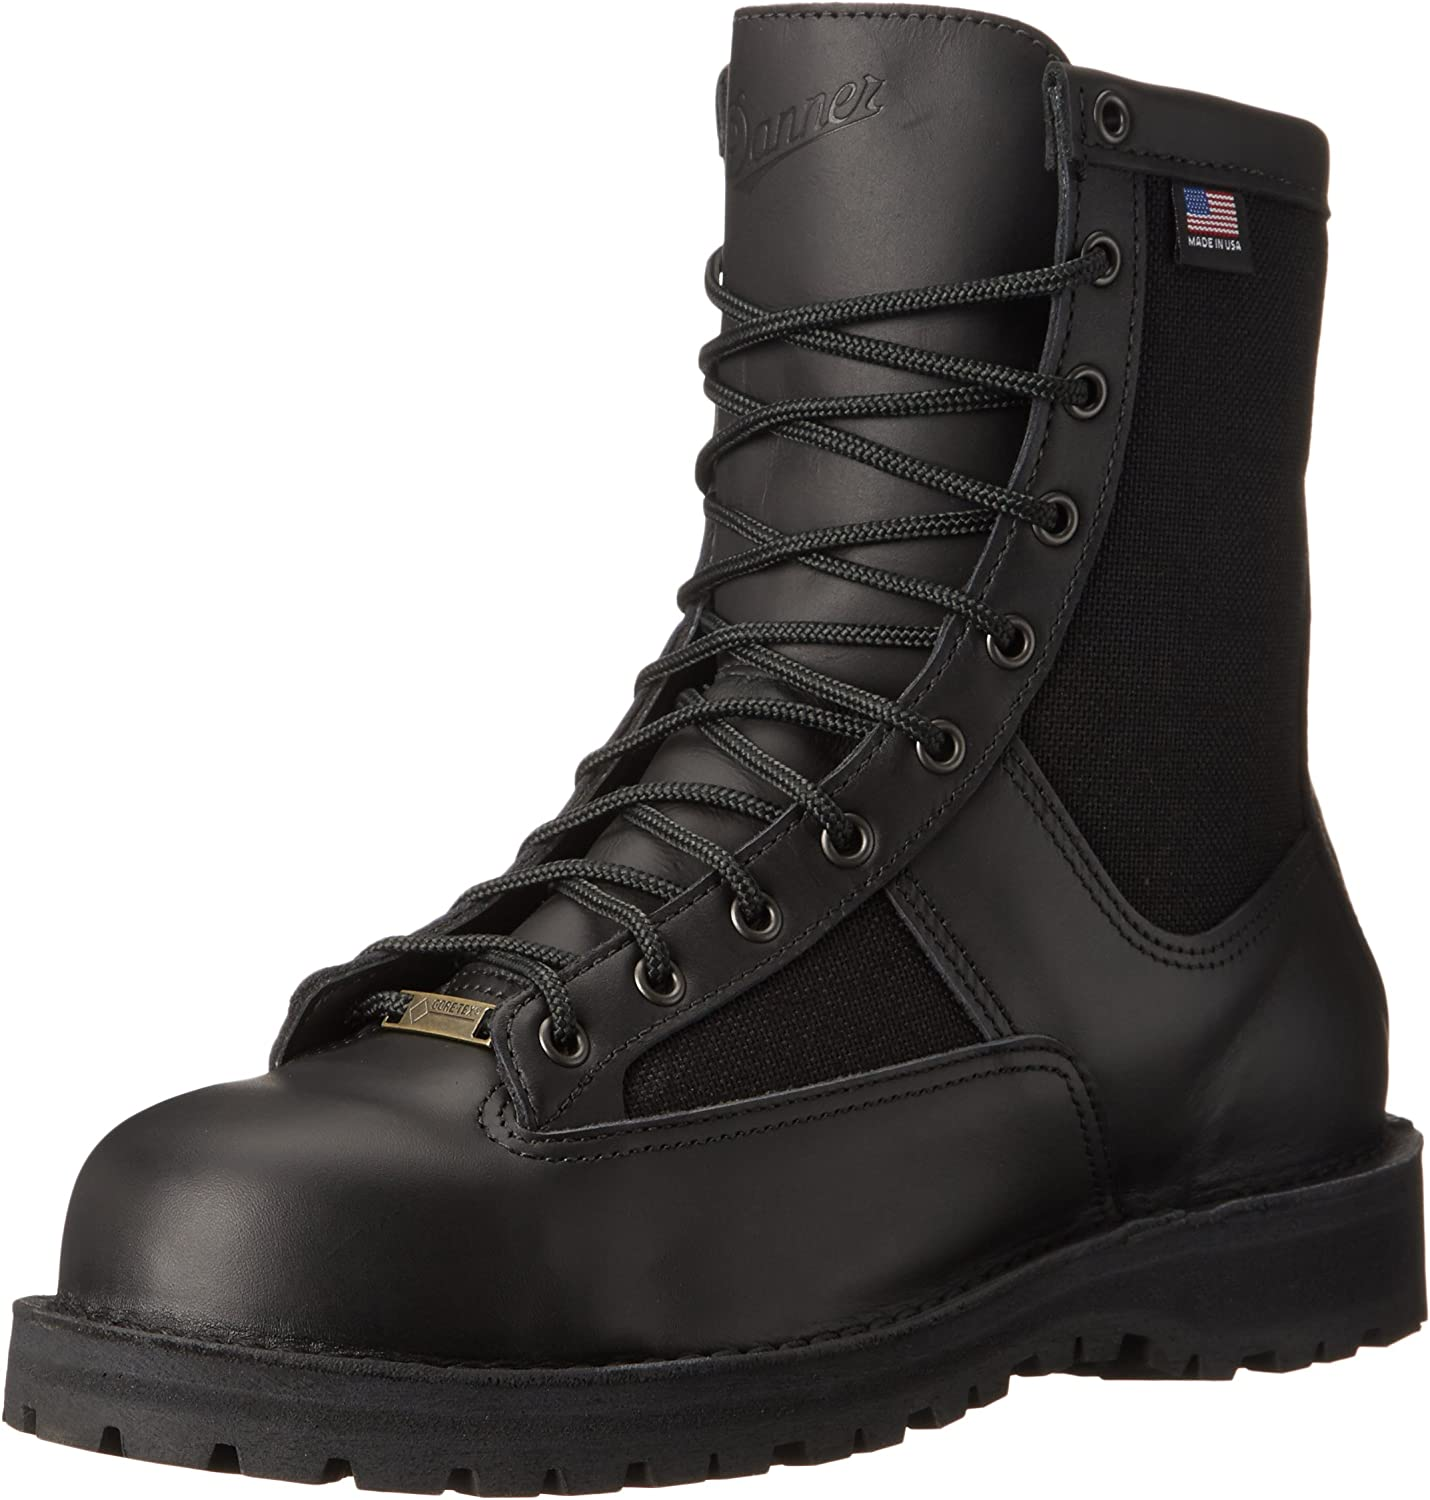 Danner Men's Acadia 8  Non-Metallic Safety Toe Boot